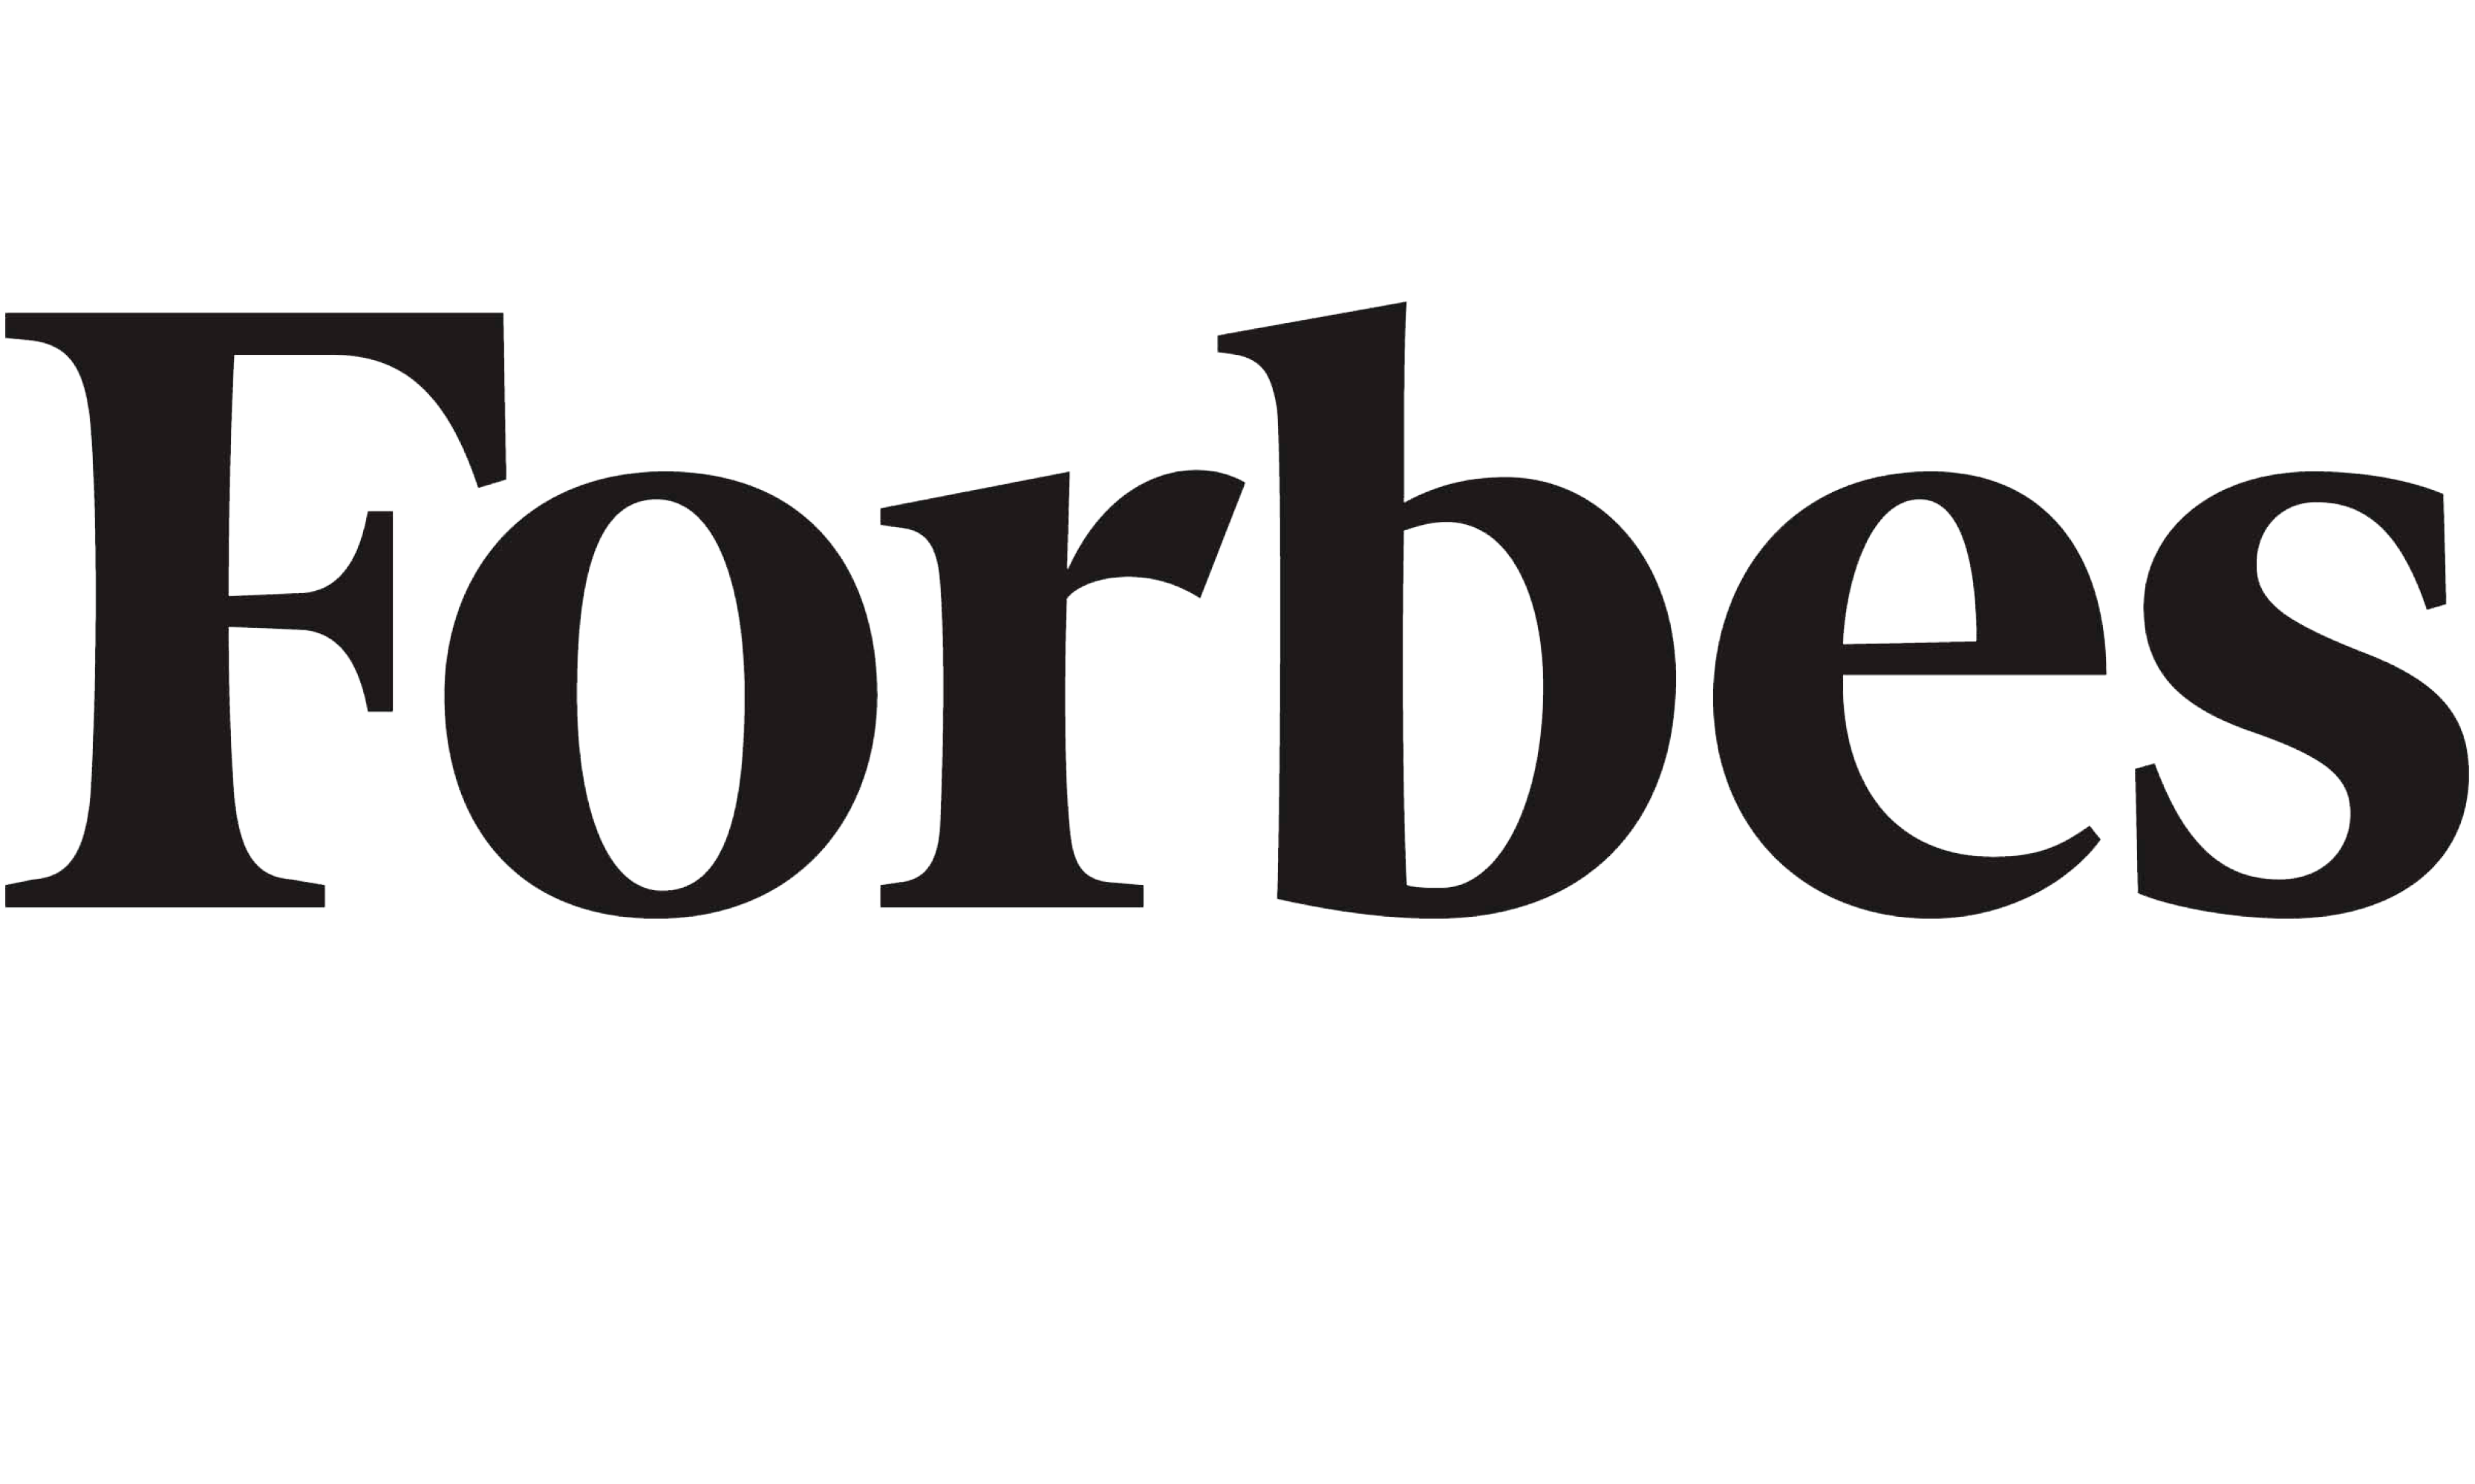 Forbes Black Logo Png 03003 2 - Forbes, Transparent background PNG HD thumbnail